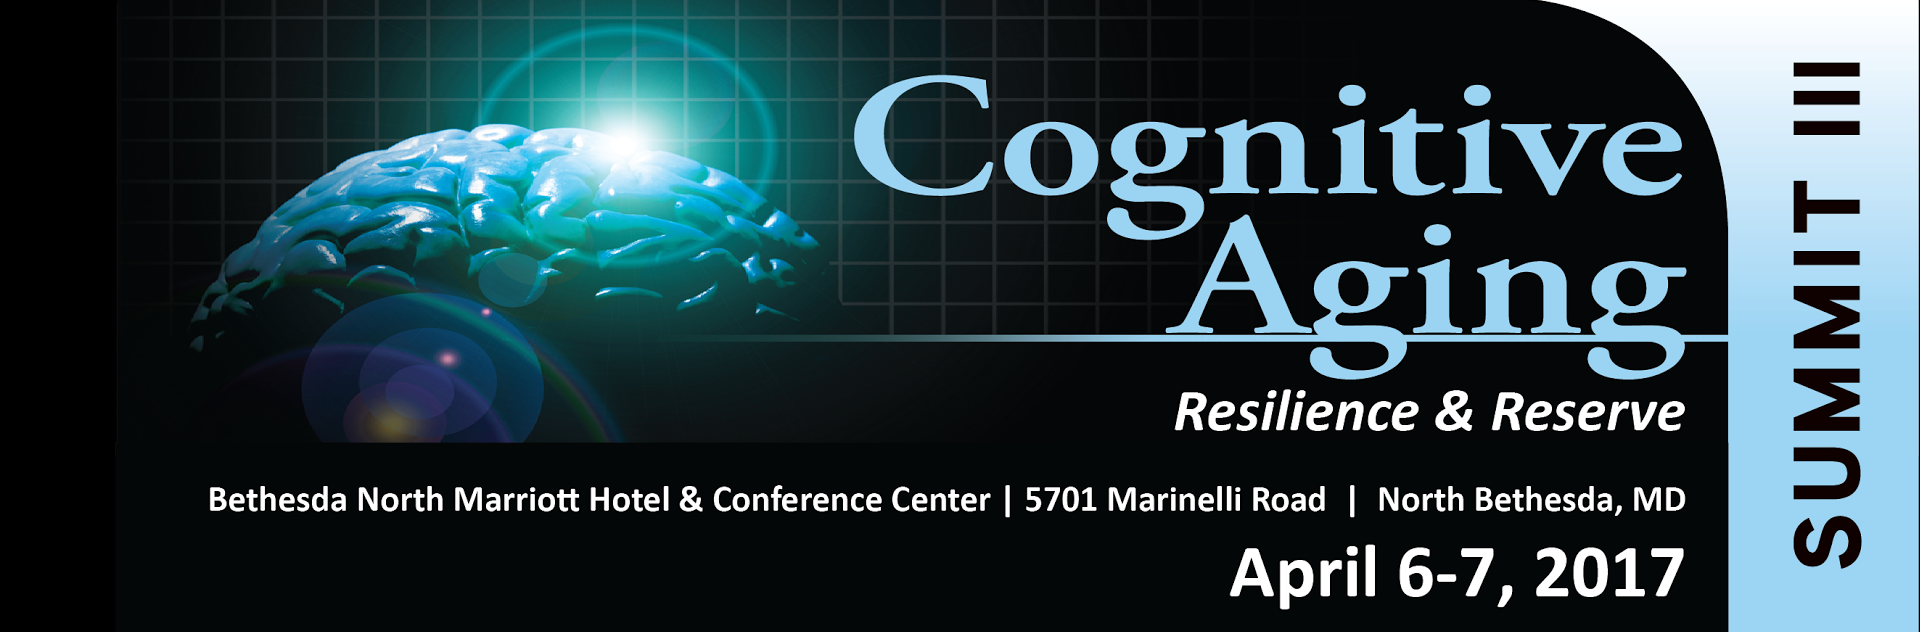 Cognitive Aging Summit III web banner - NO LOGOS e